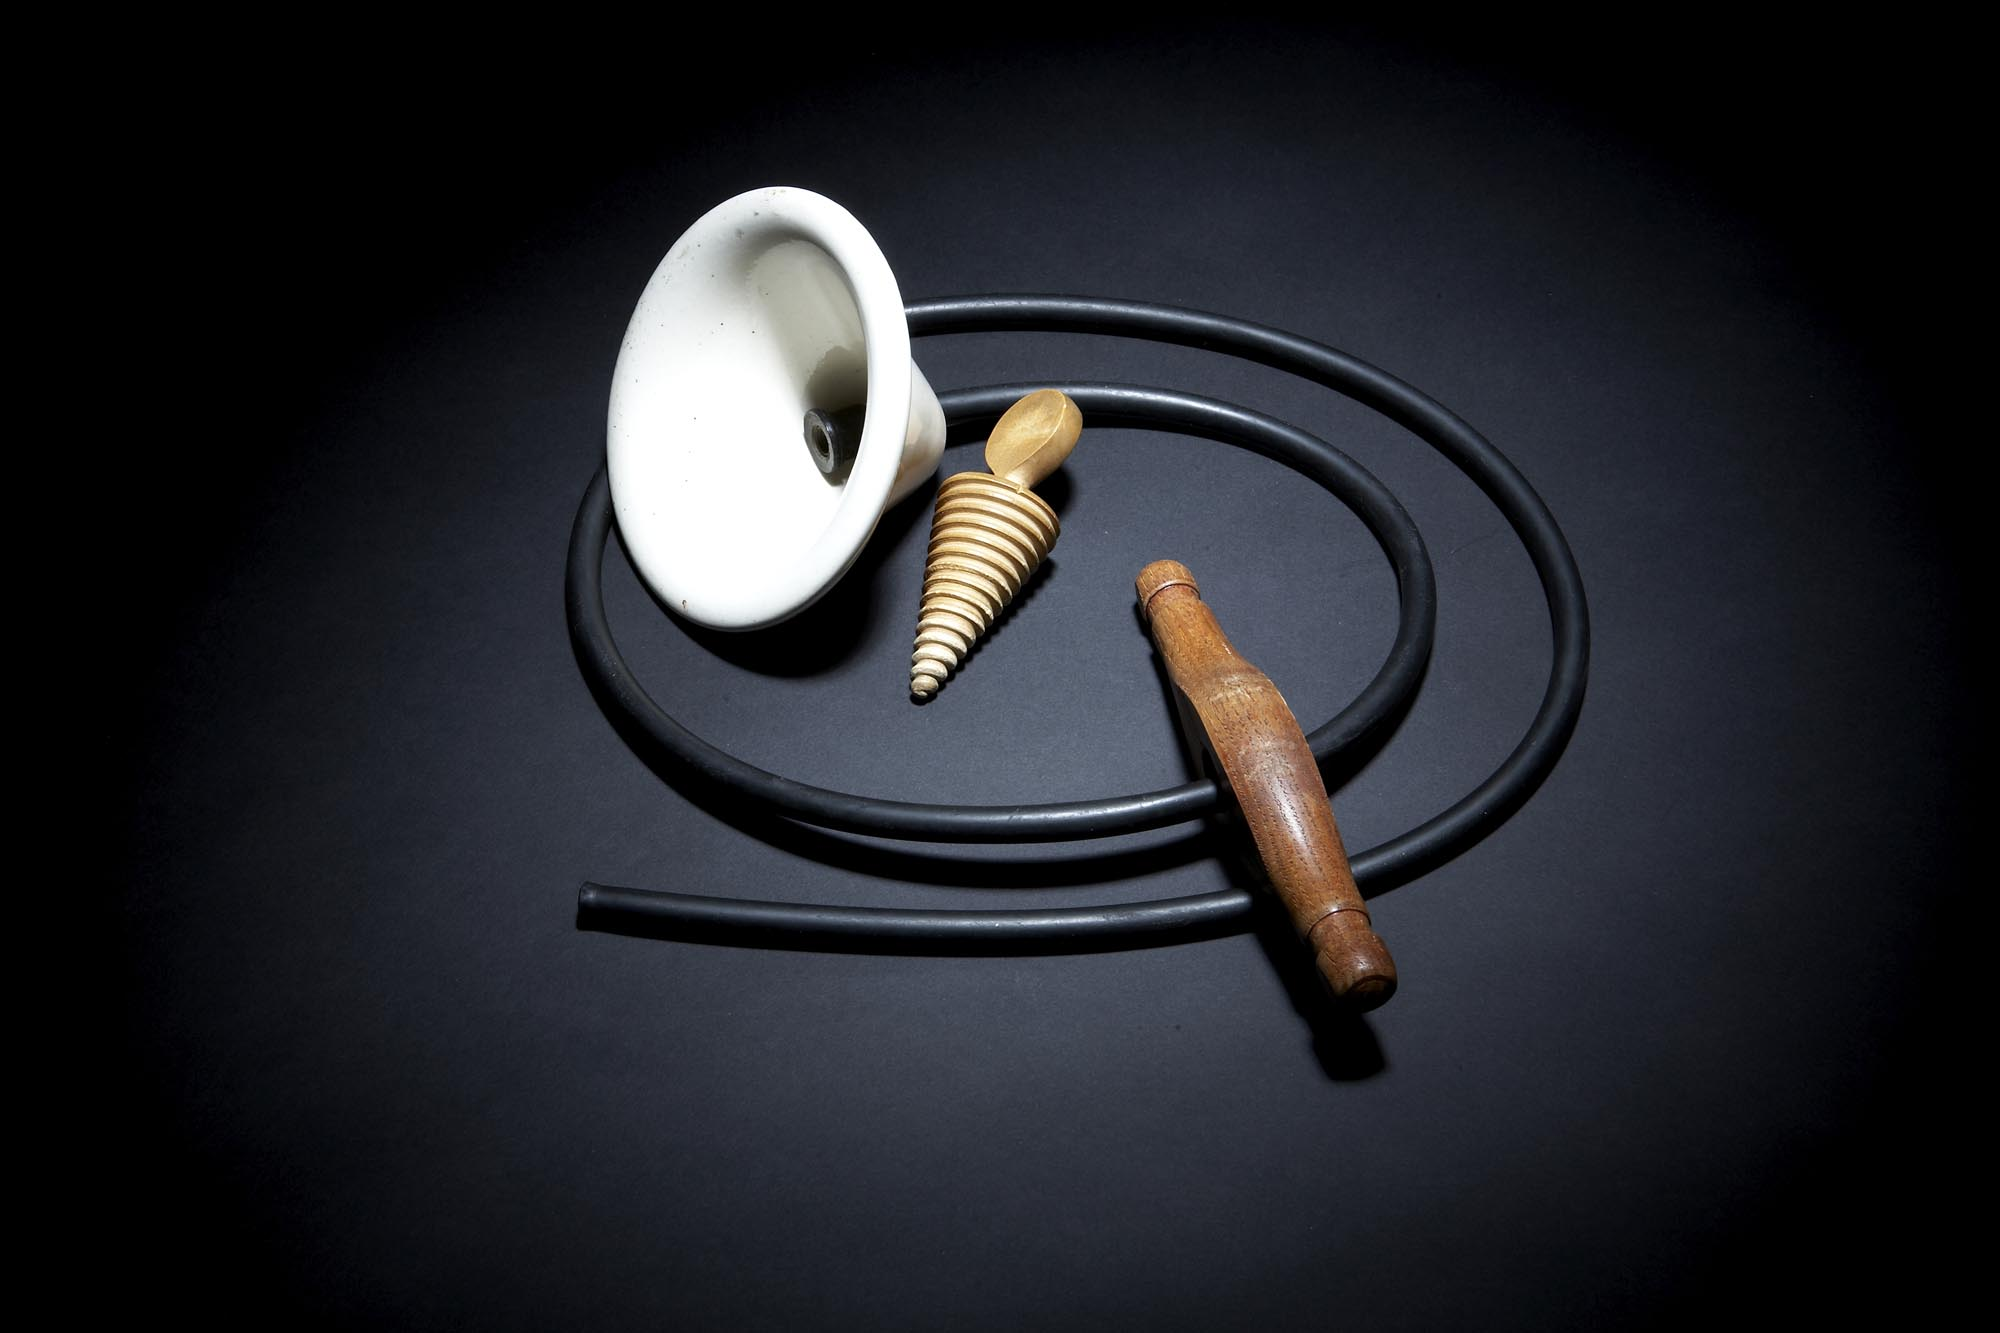 a photo of a white ceramic funnel, rubber hose and two wooden plugs